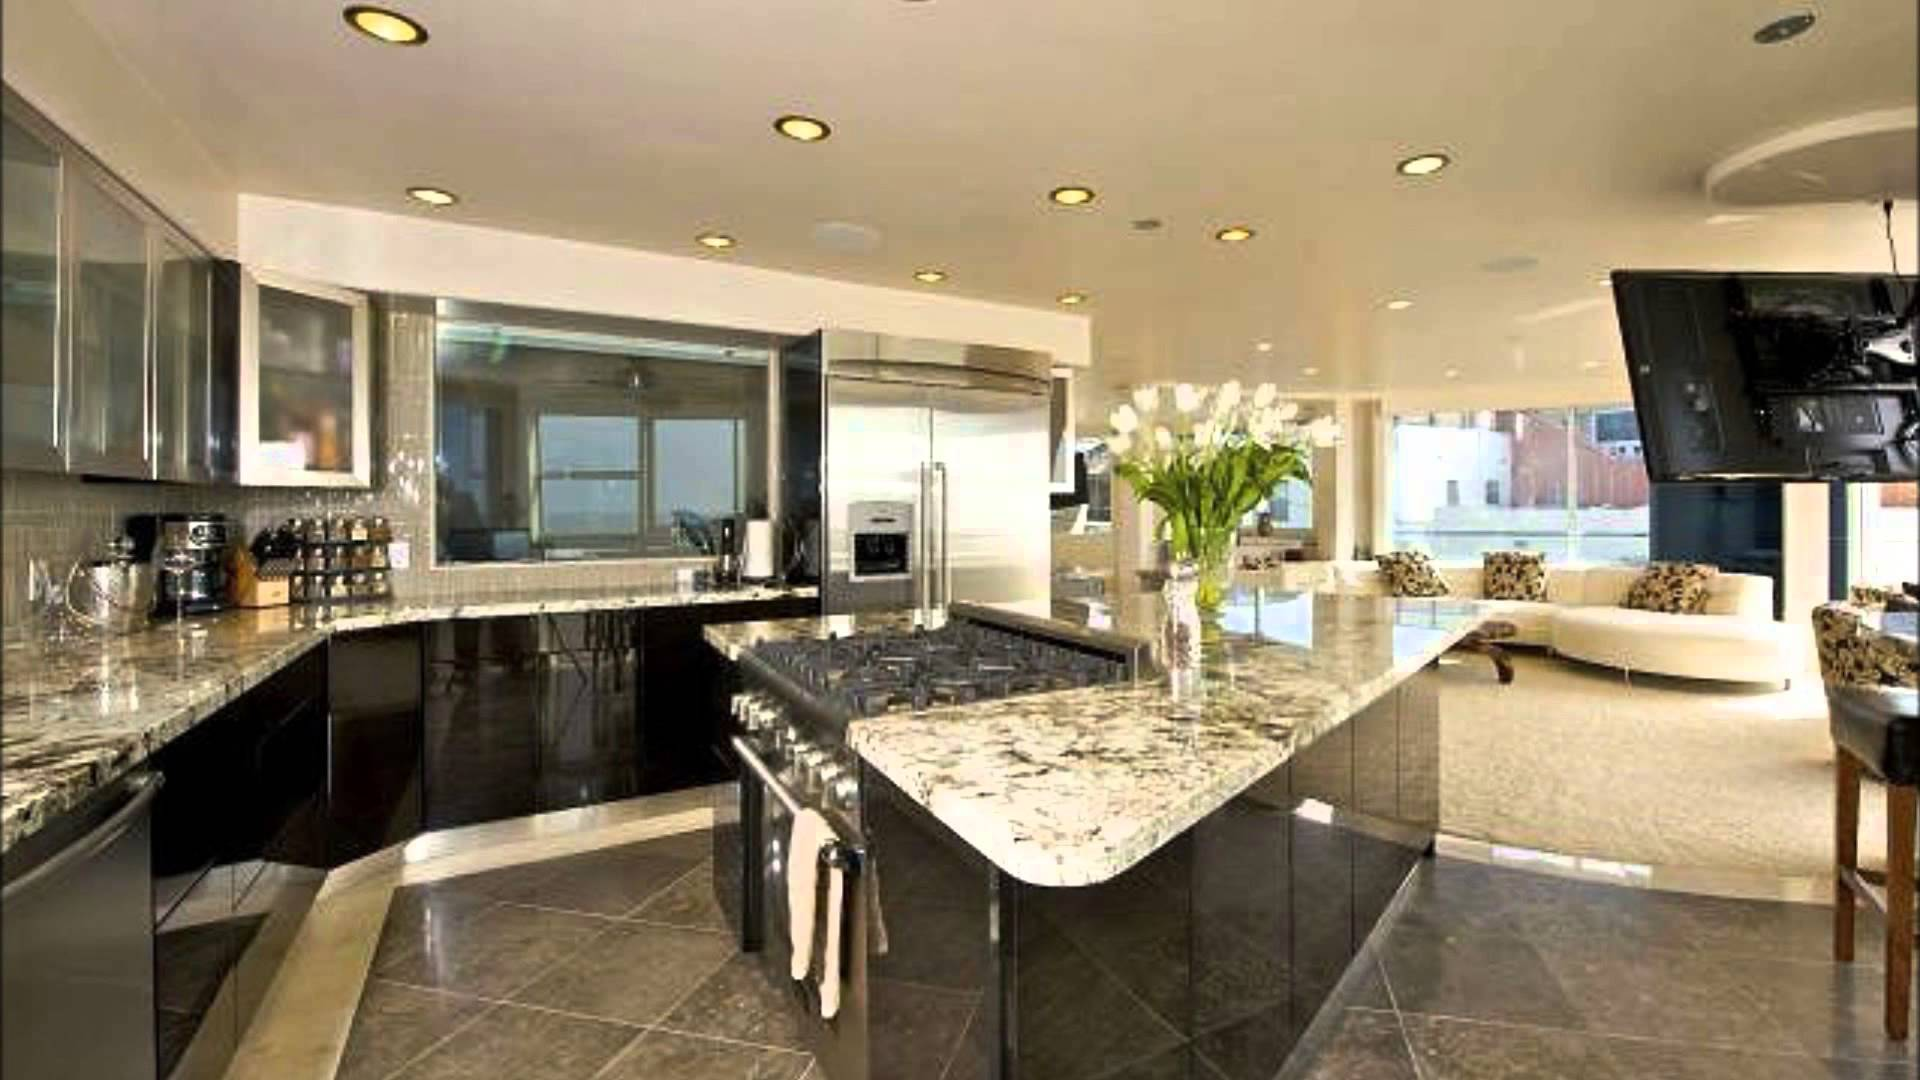 Design your own kitchen ideas with images Home kitchen